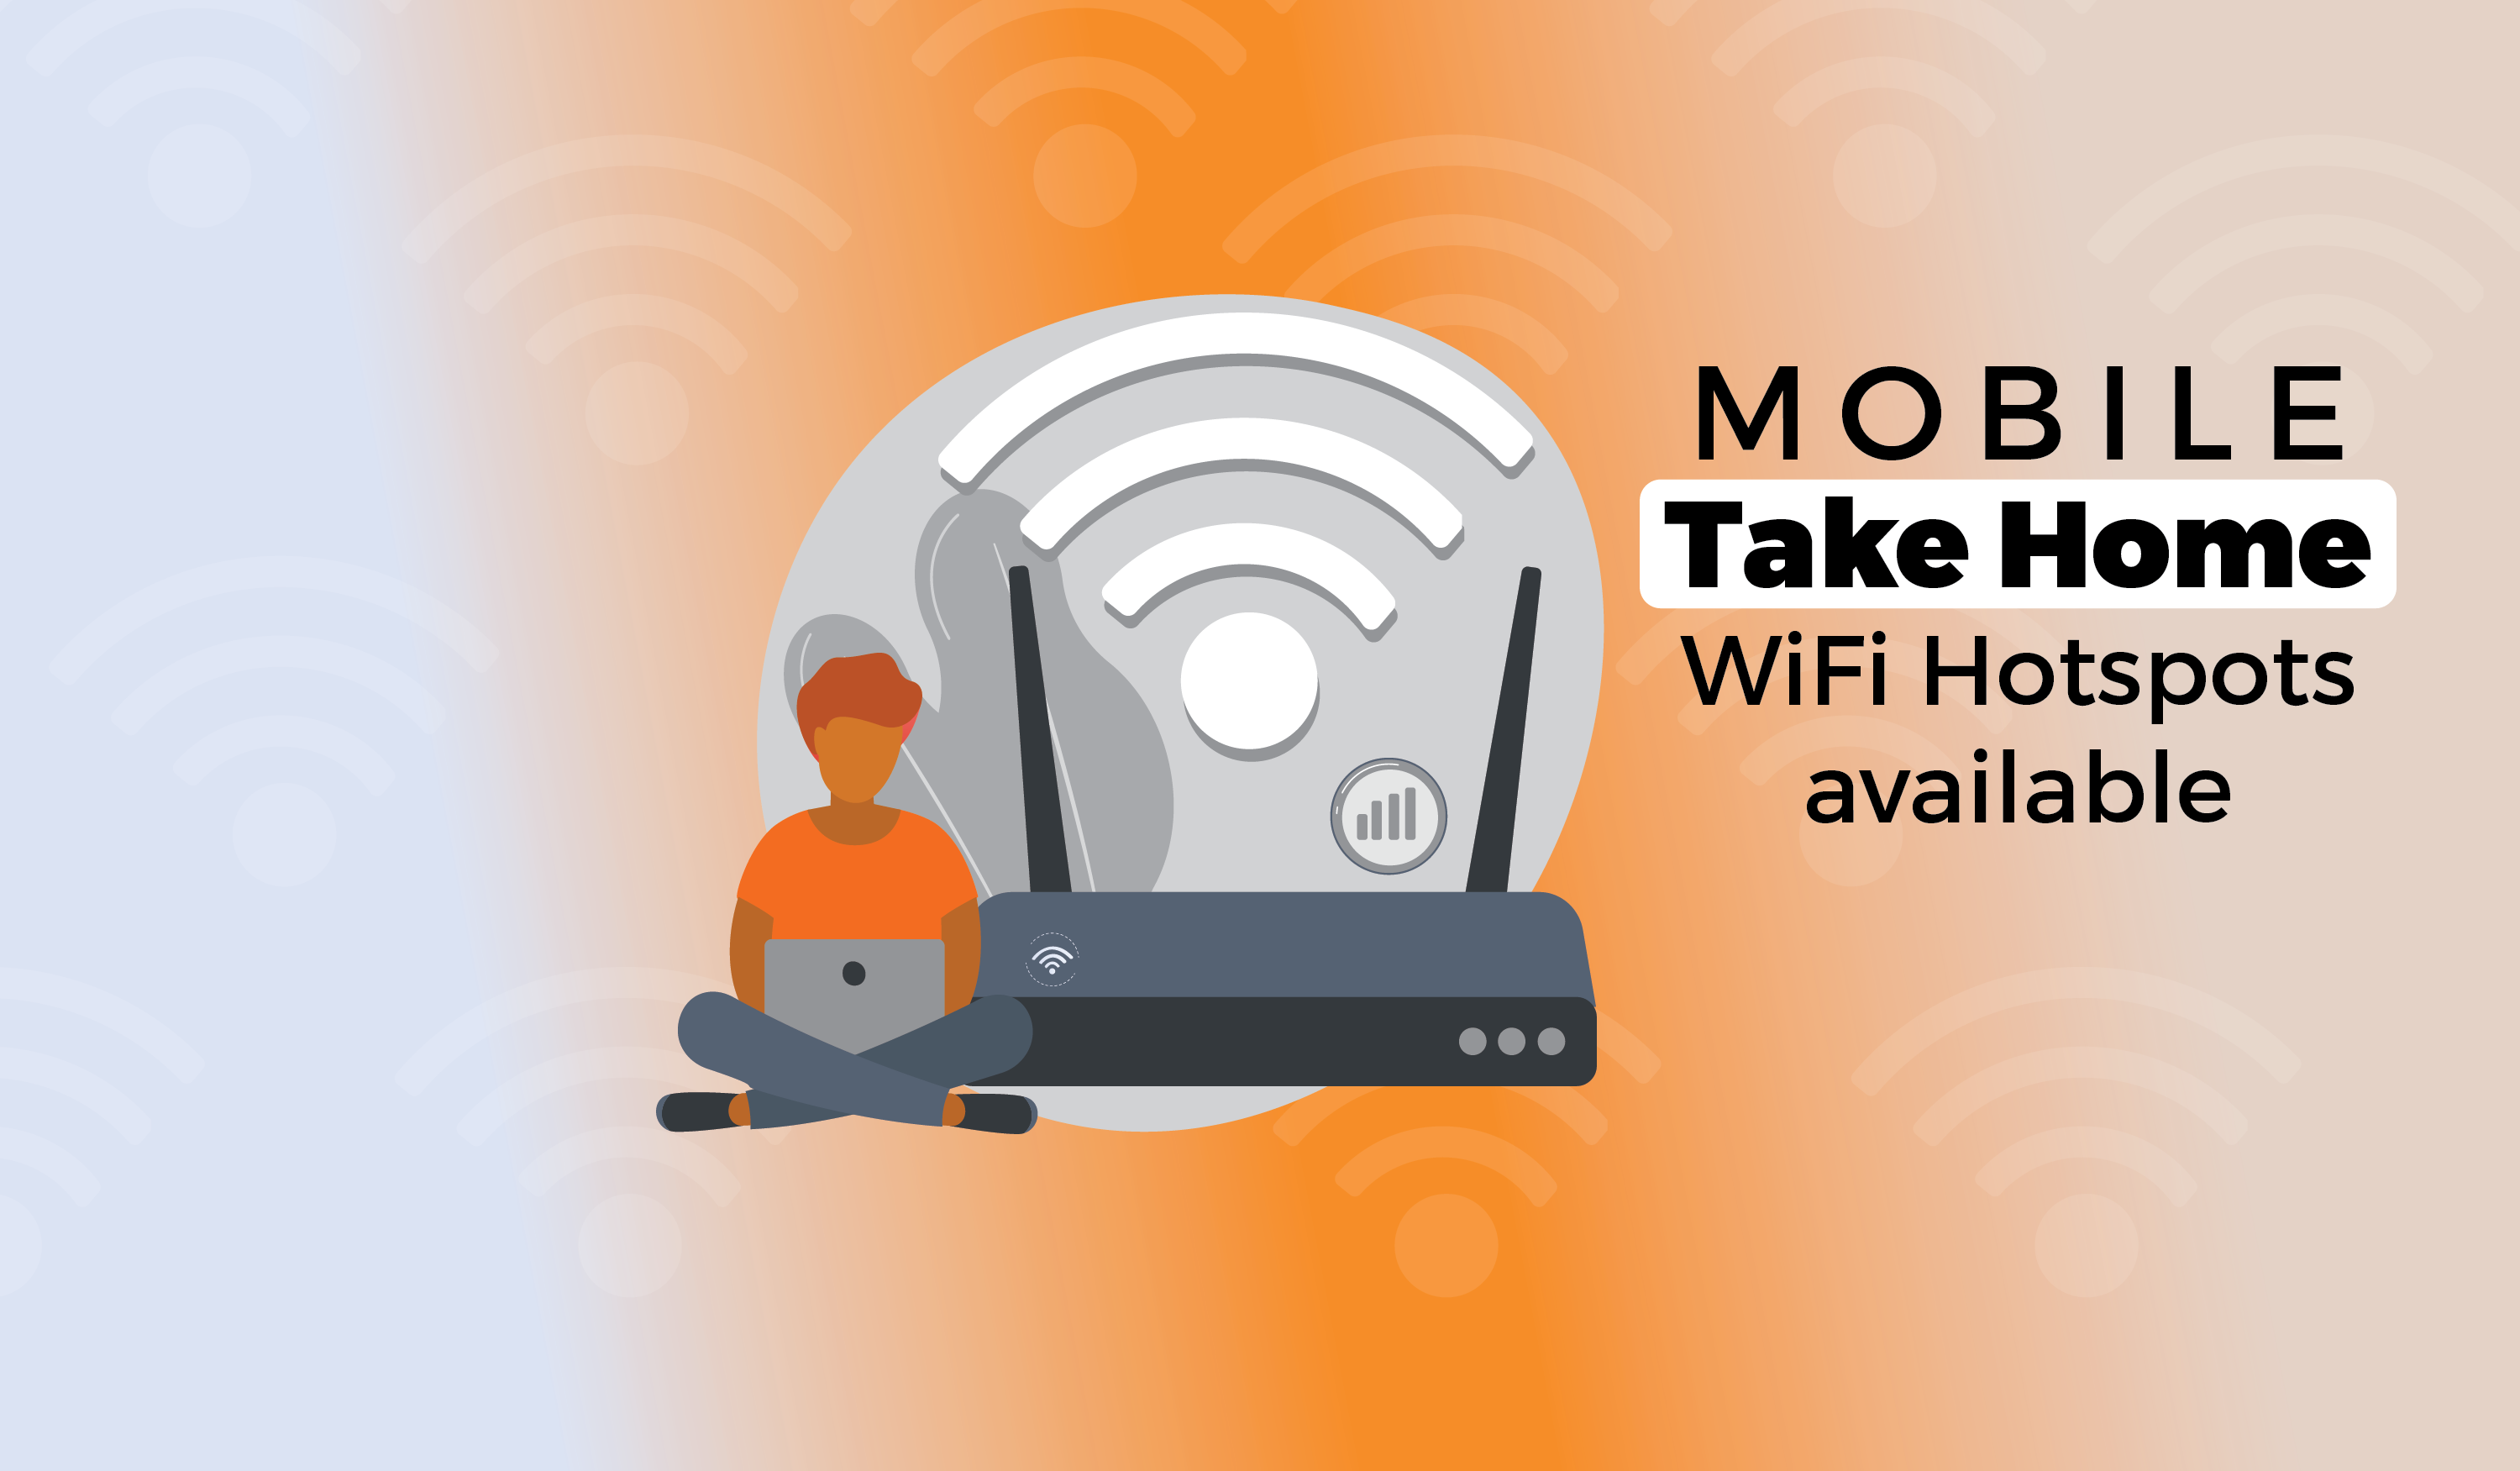 Mobile Take Home WiFi Hotspots avaiable